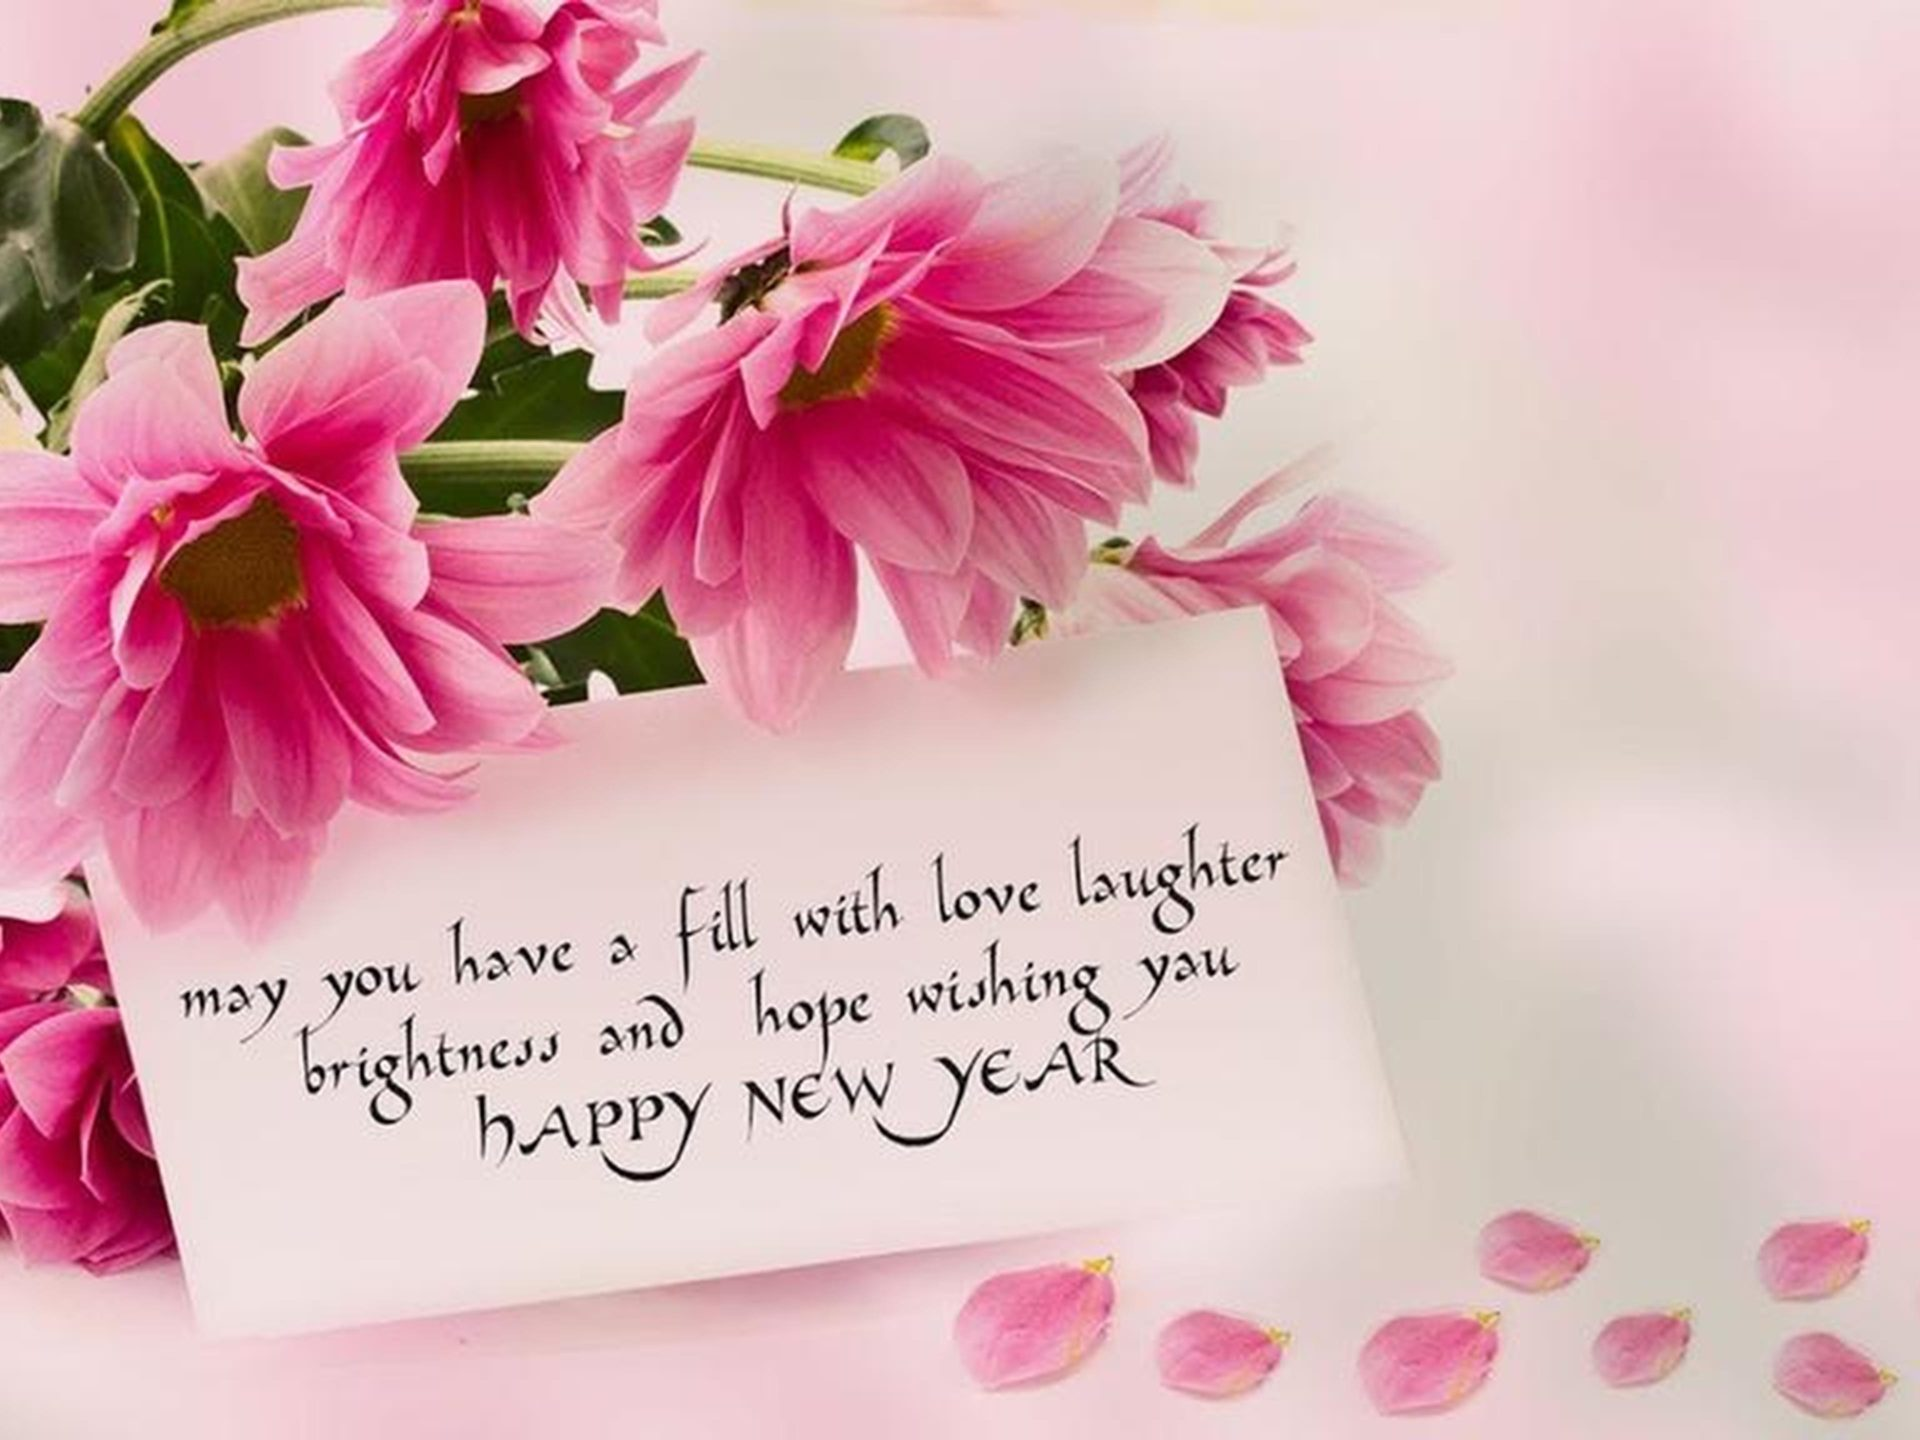 Happy New Year 2020 Rose Flowers Love Wallpapers Hd 5120x2880 1920x1440